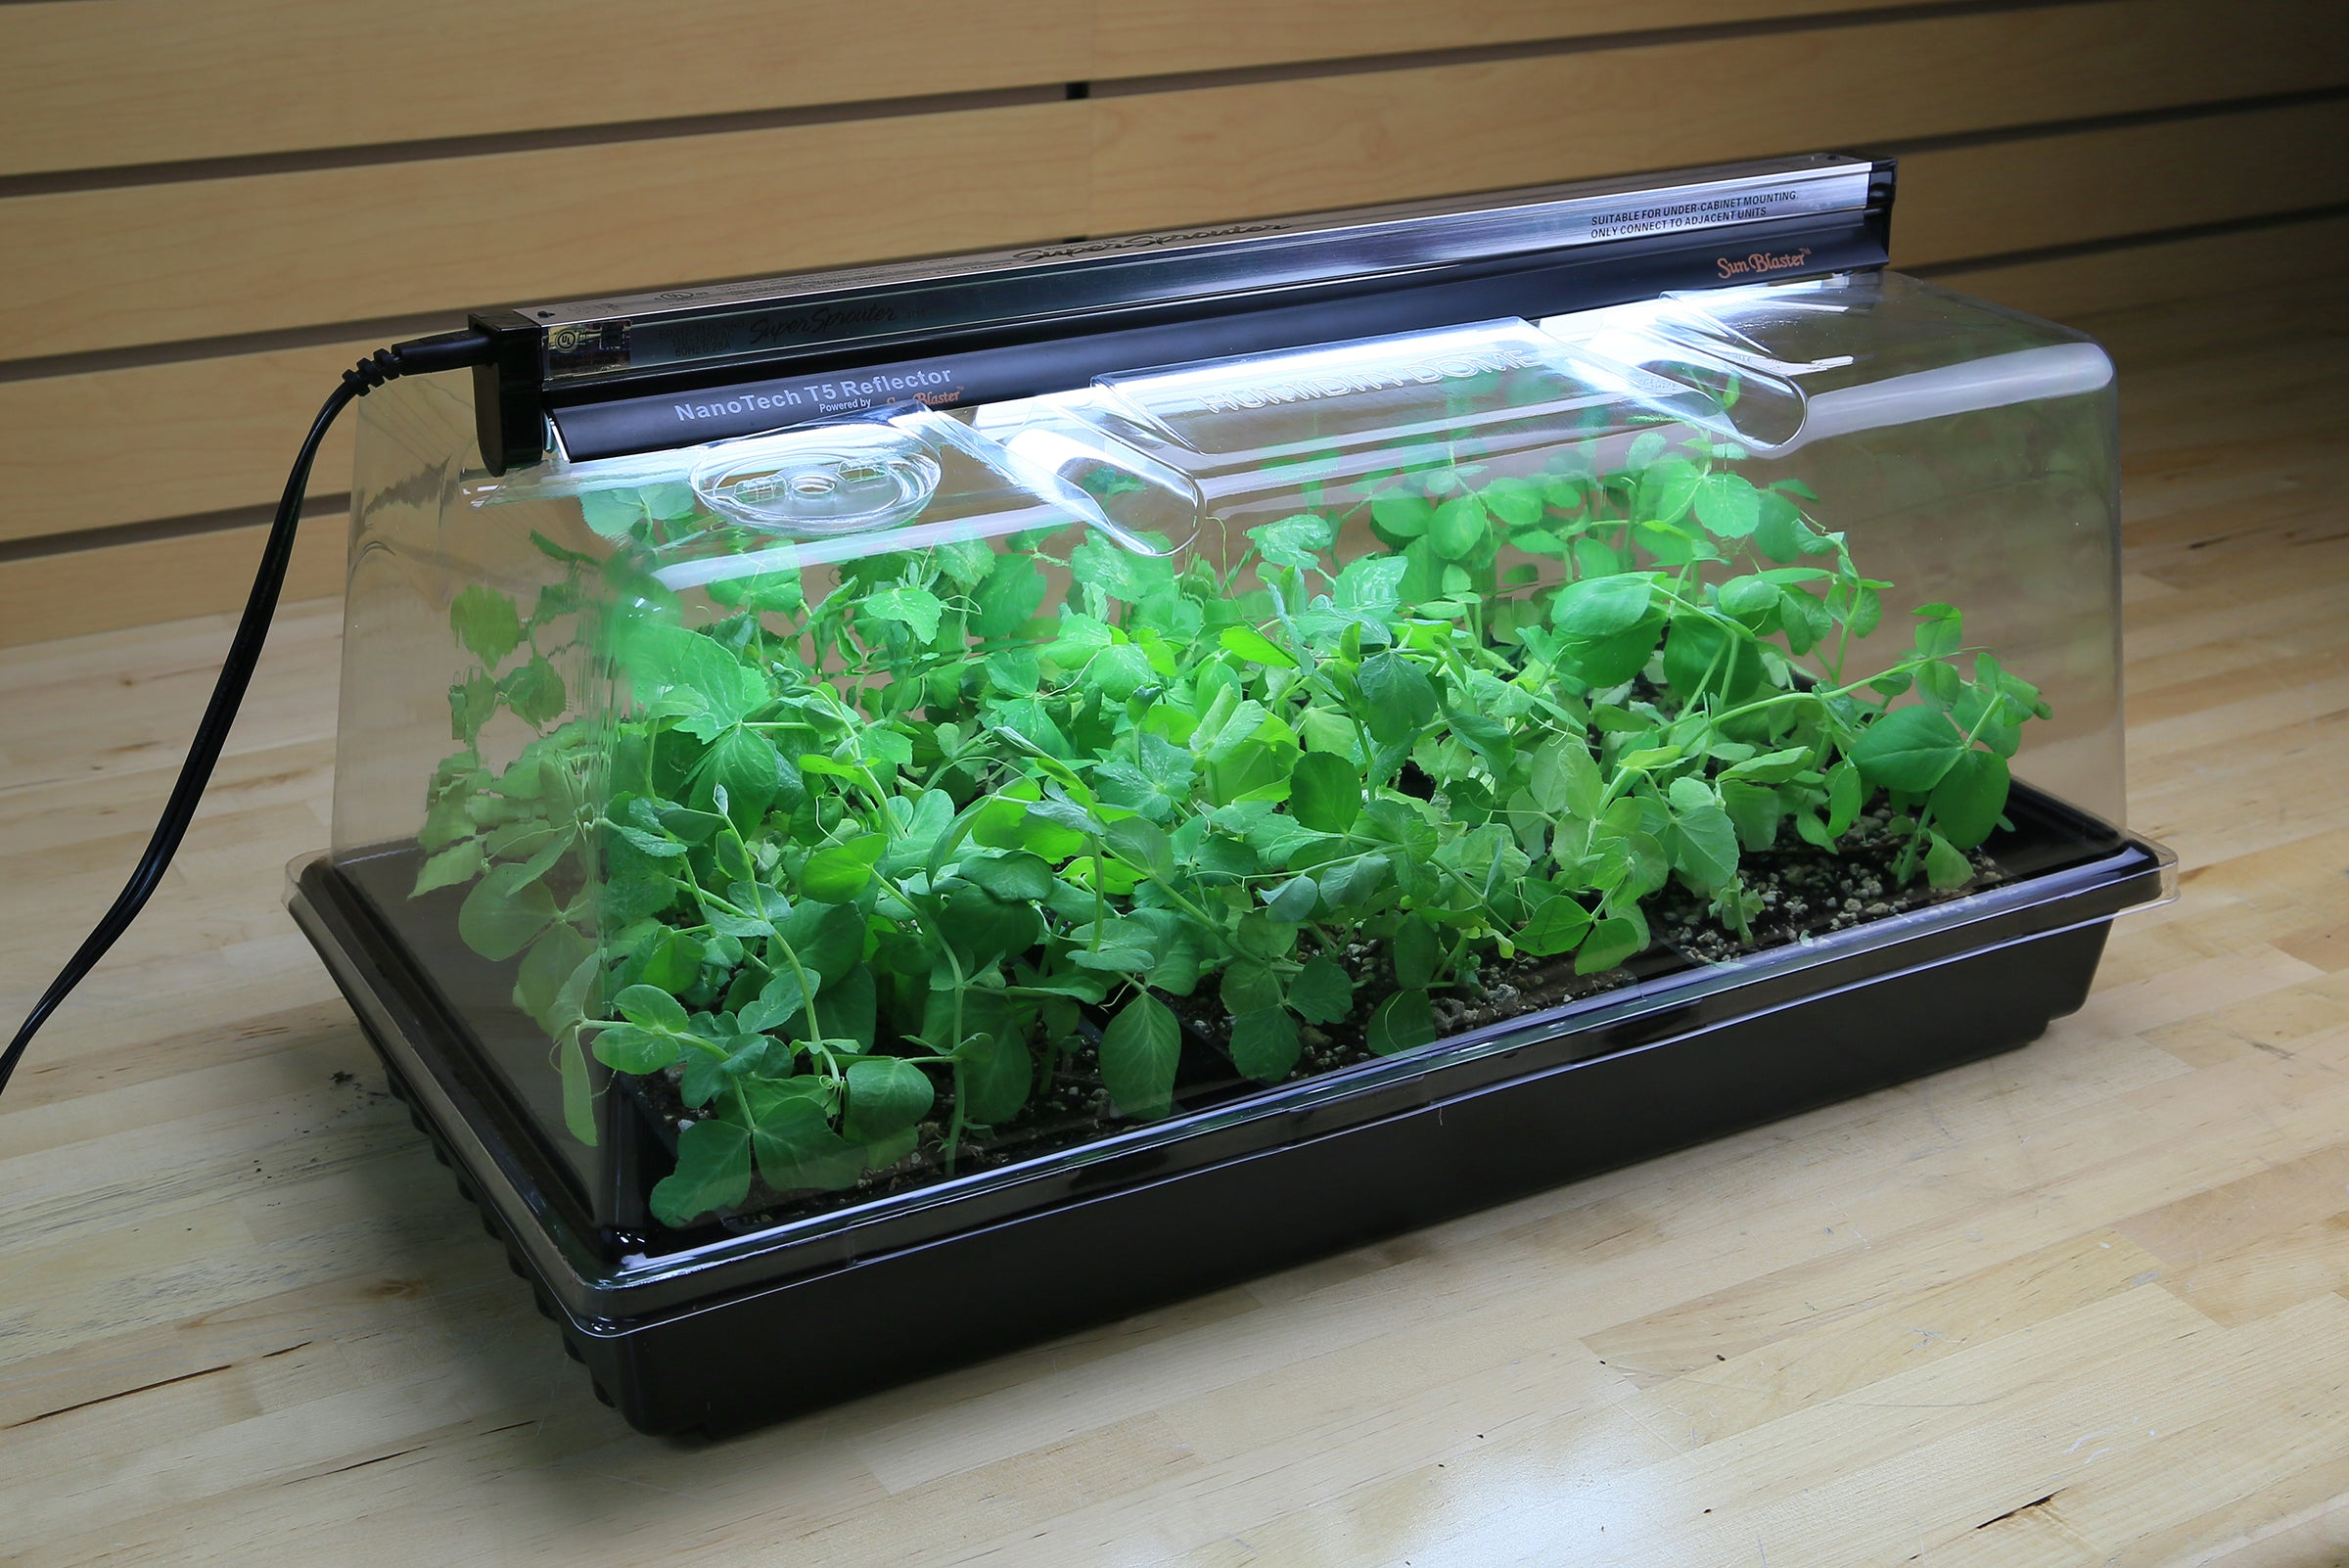 Super Sprouter Deluxe Propagation Kit